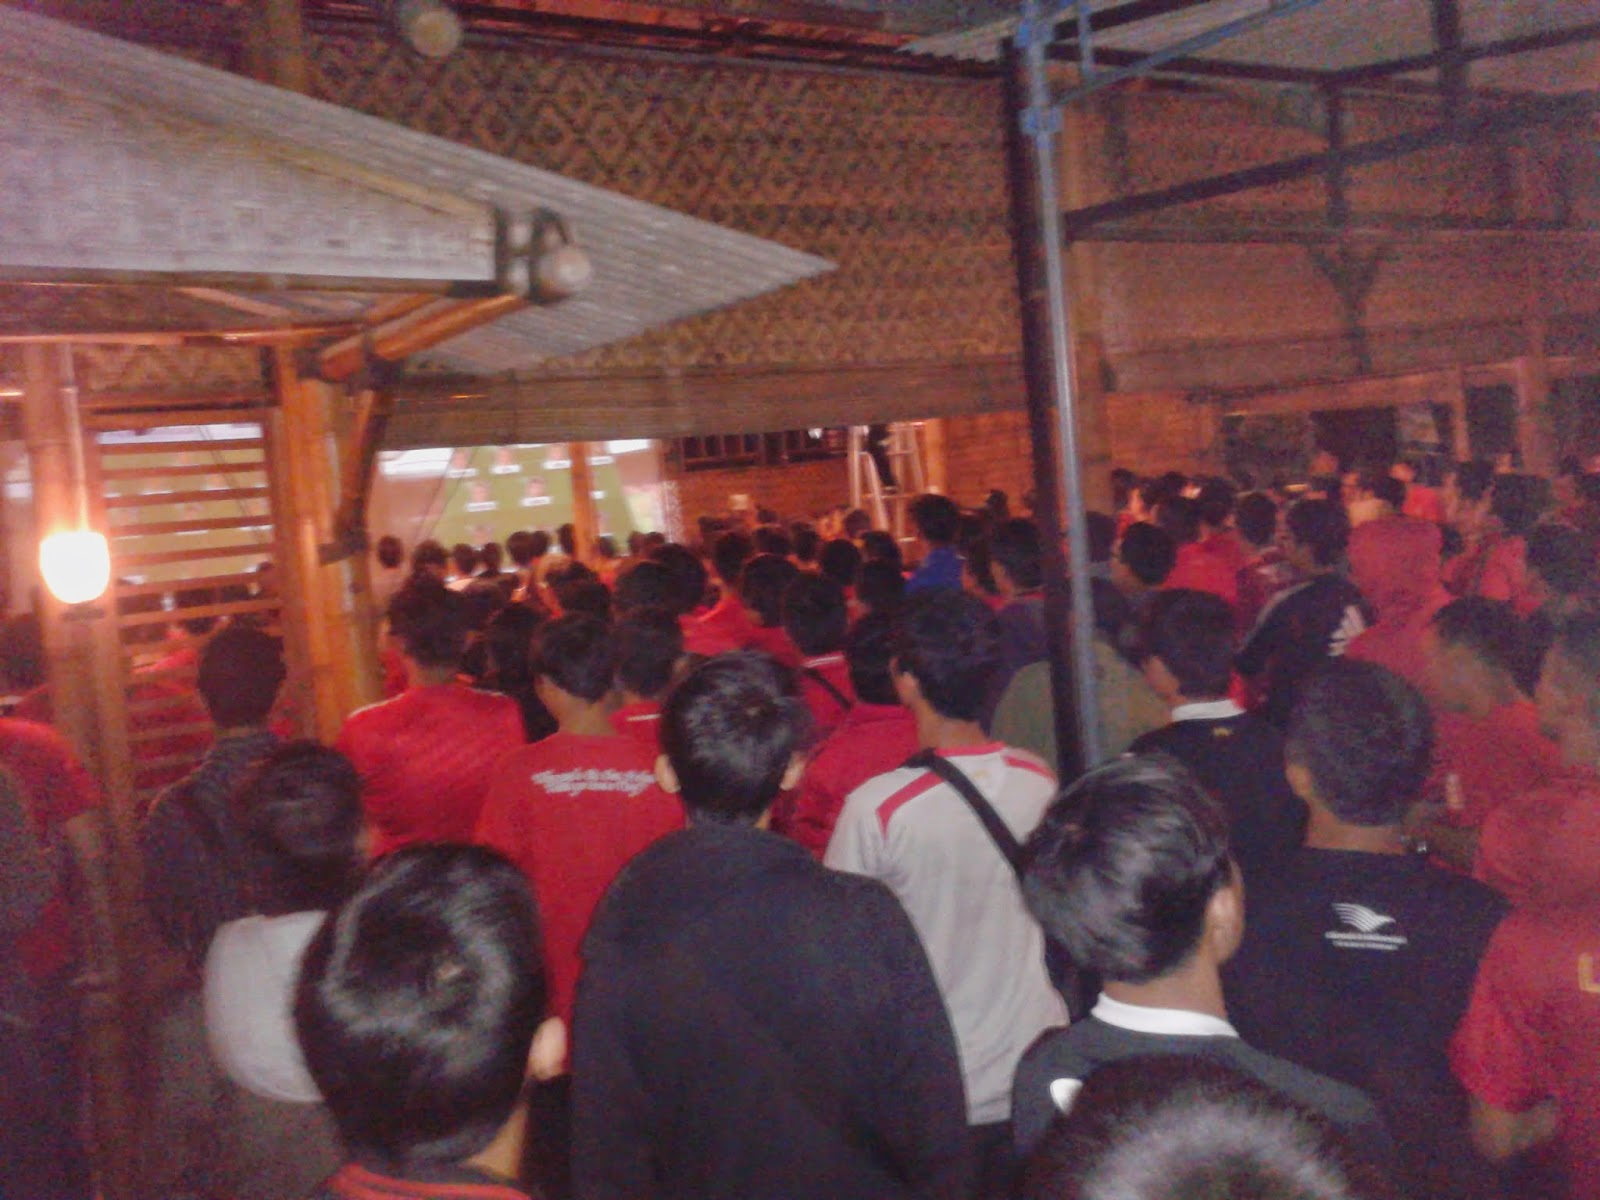 Menyanyikan Lagu Indonesia Raya dan You'll Never Walk Alone